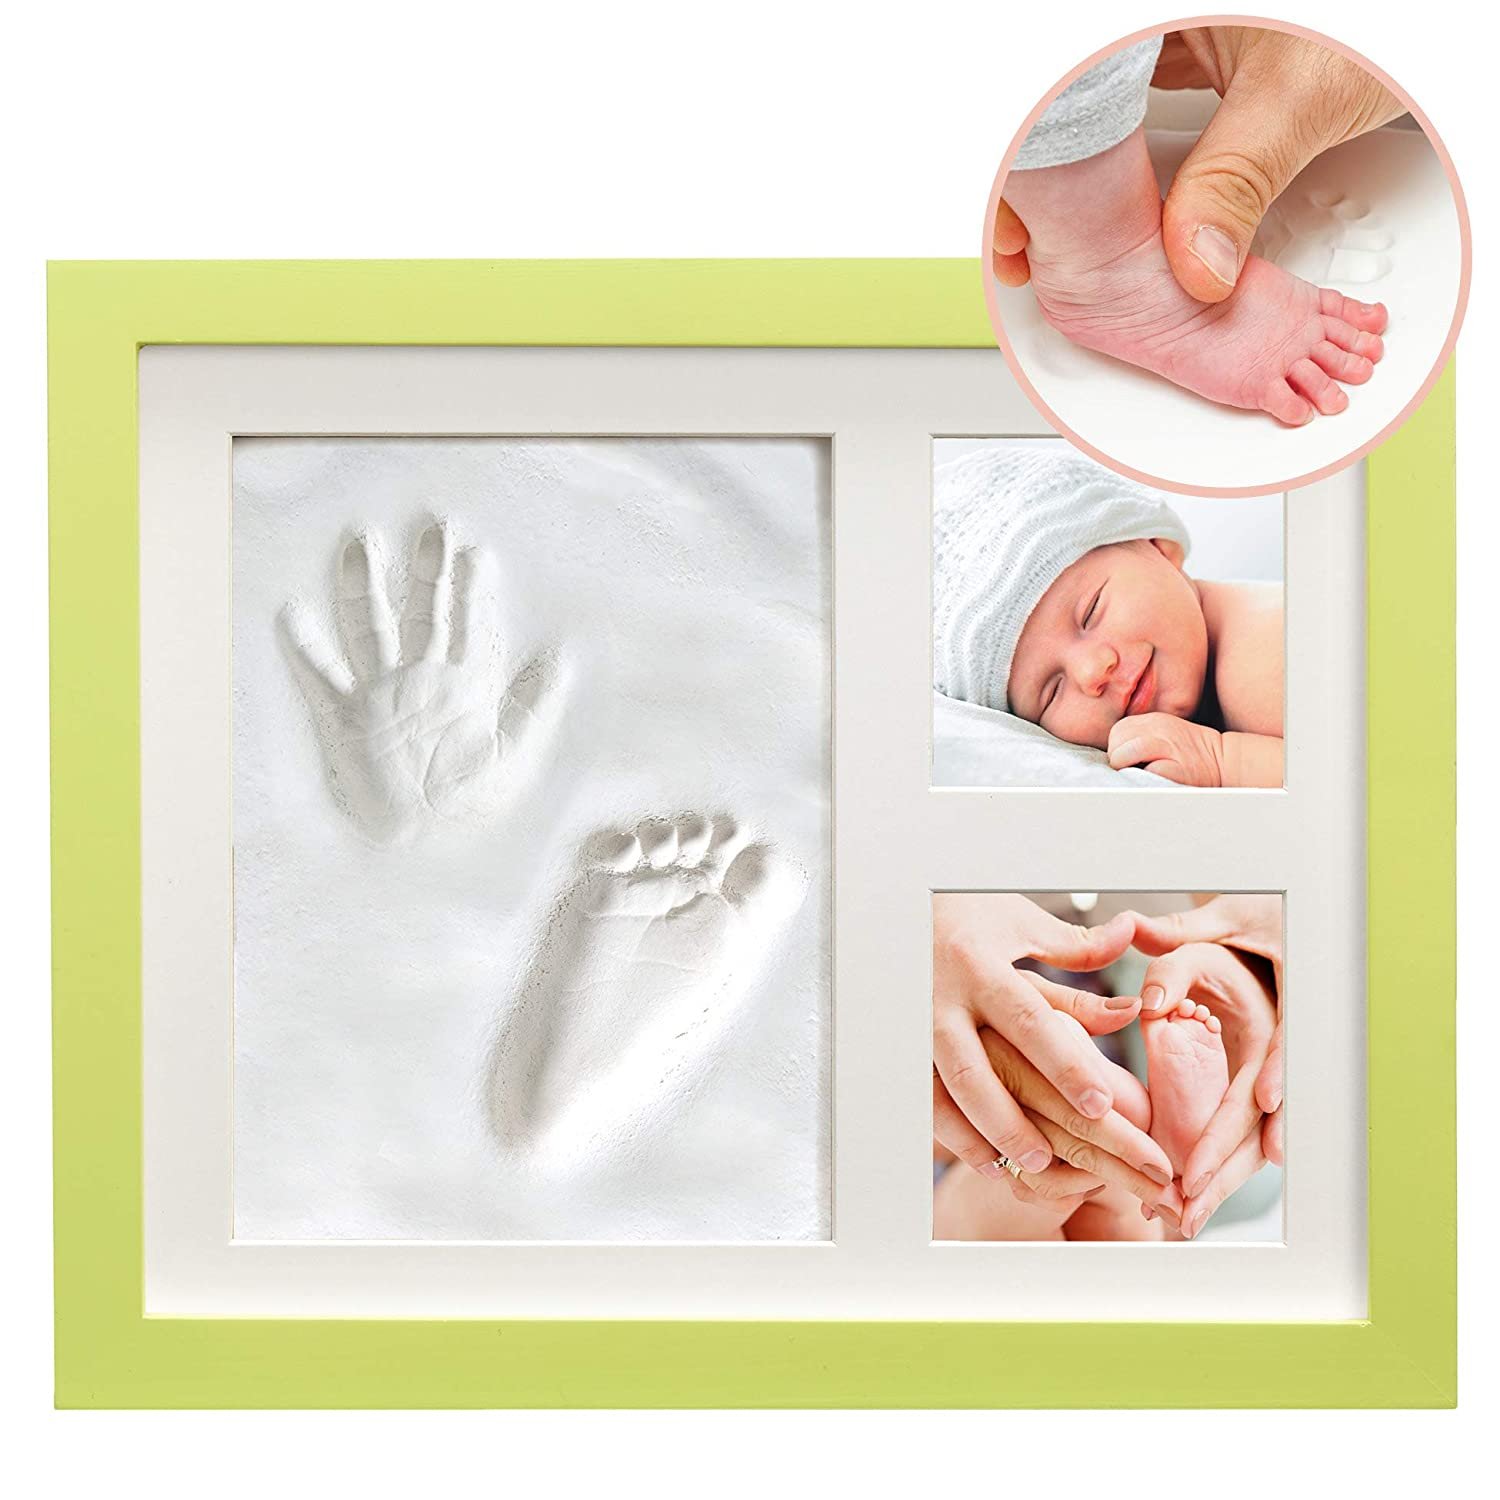 "White Clay Hand/Footprint Photo Frame for Babies, Kids, and Pets – Includes 9"" x 11"" Colored MDF Wood Photo Frame, Roller, Mounting Hardware, and Instructions -"